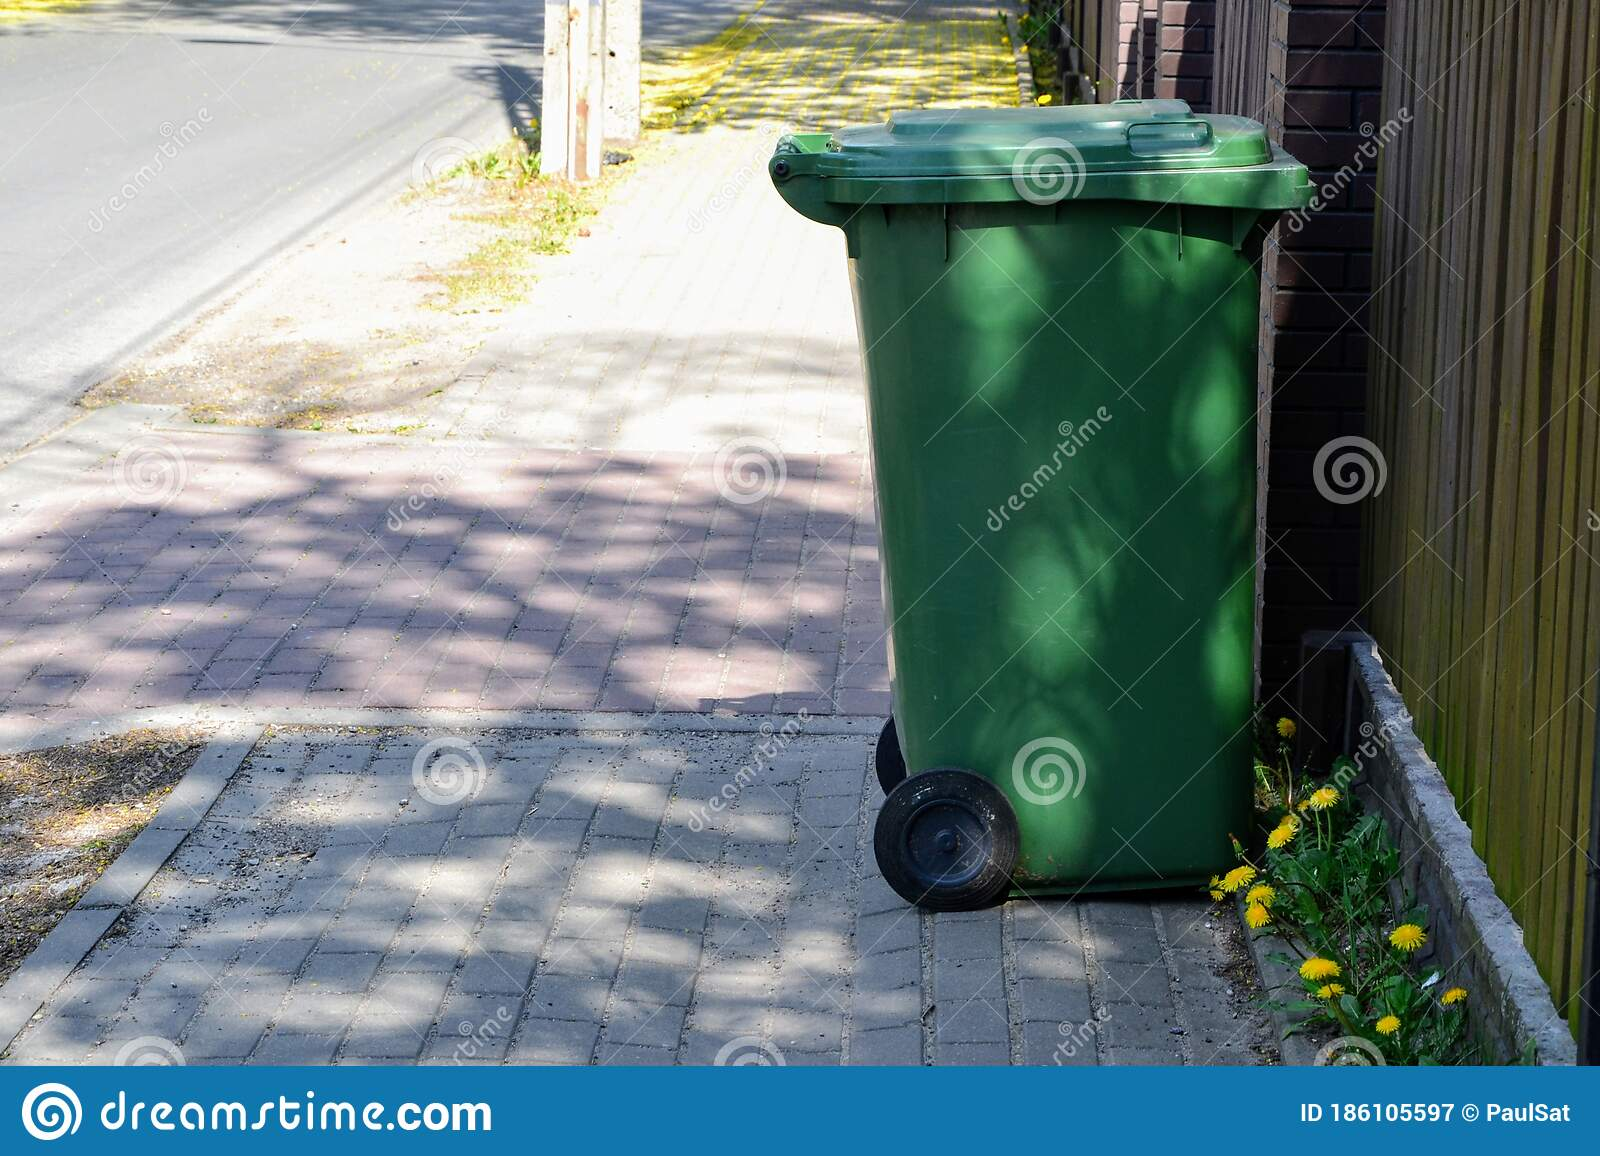 Green Plastic Garbage Can Or Trash Disposal Bin On Wheels Stock Image Image Of Concept Dustbin 186105597